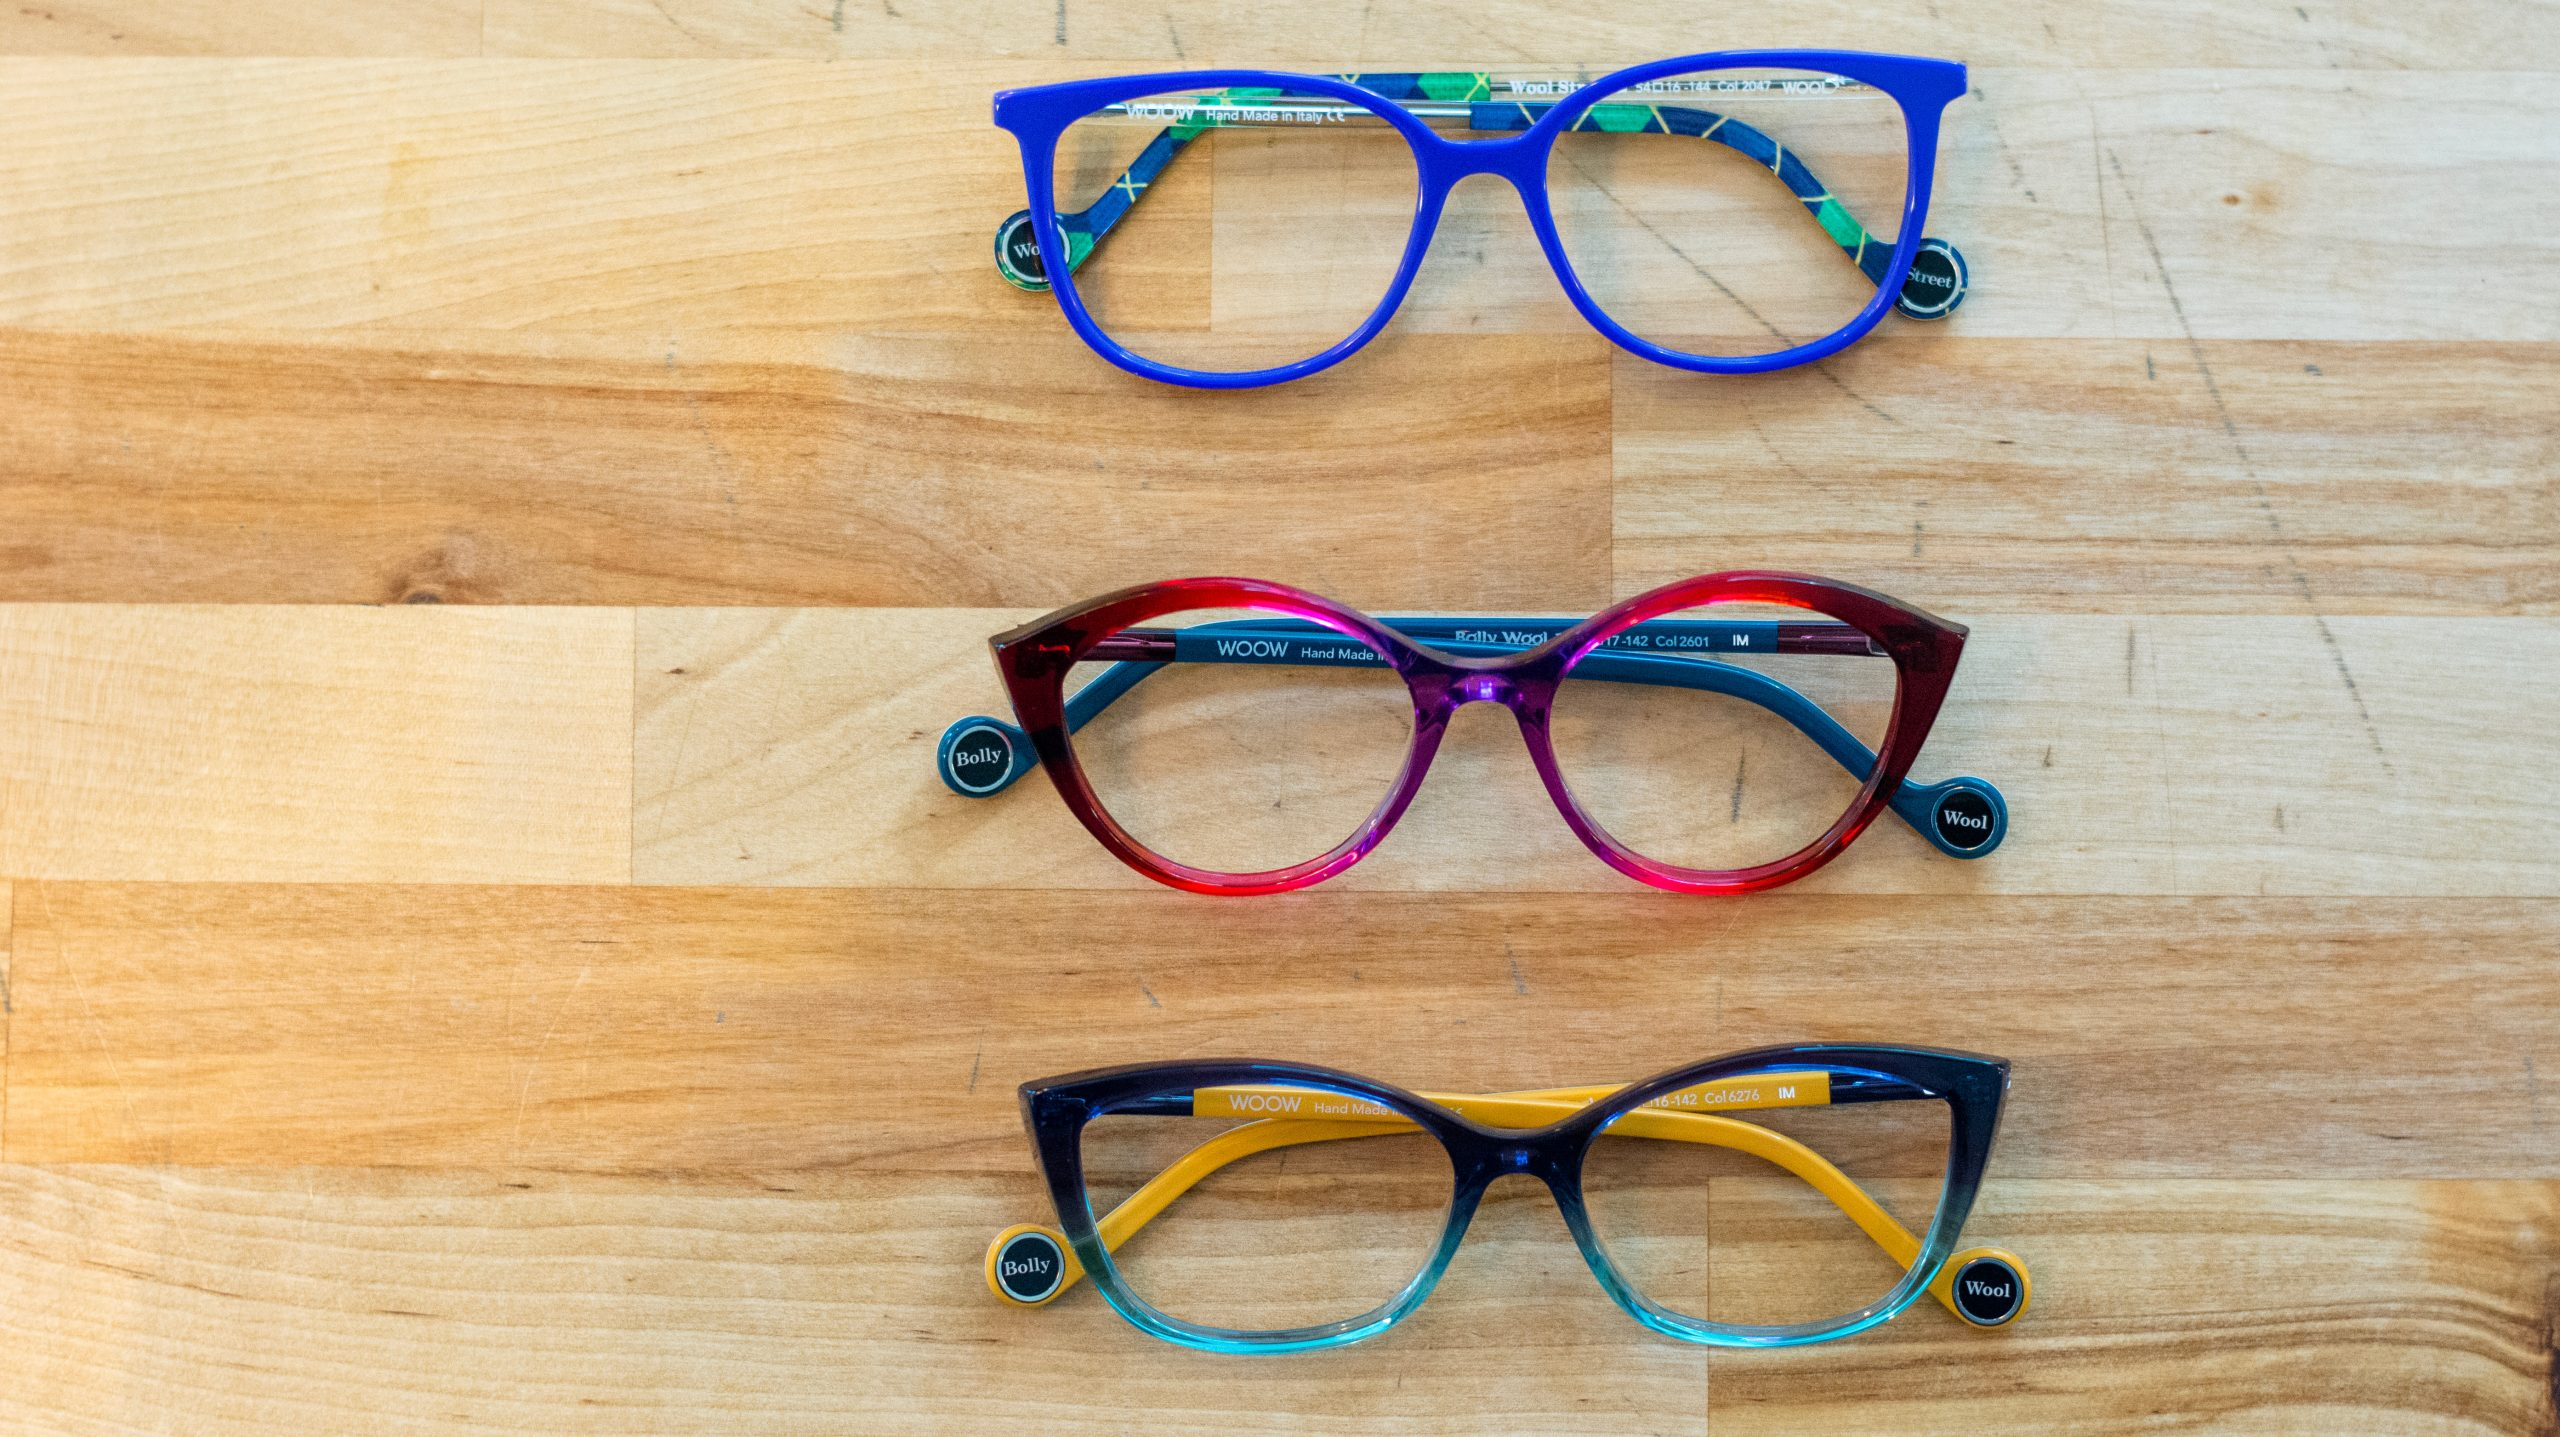 WOOW Eyewear Available Now at Dr. Tavel